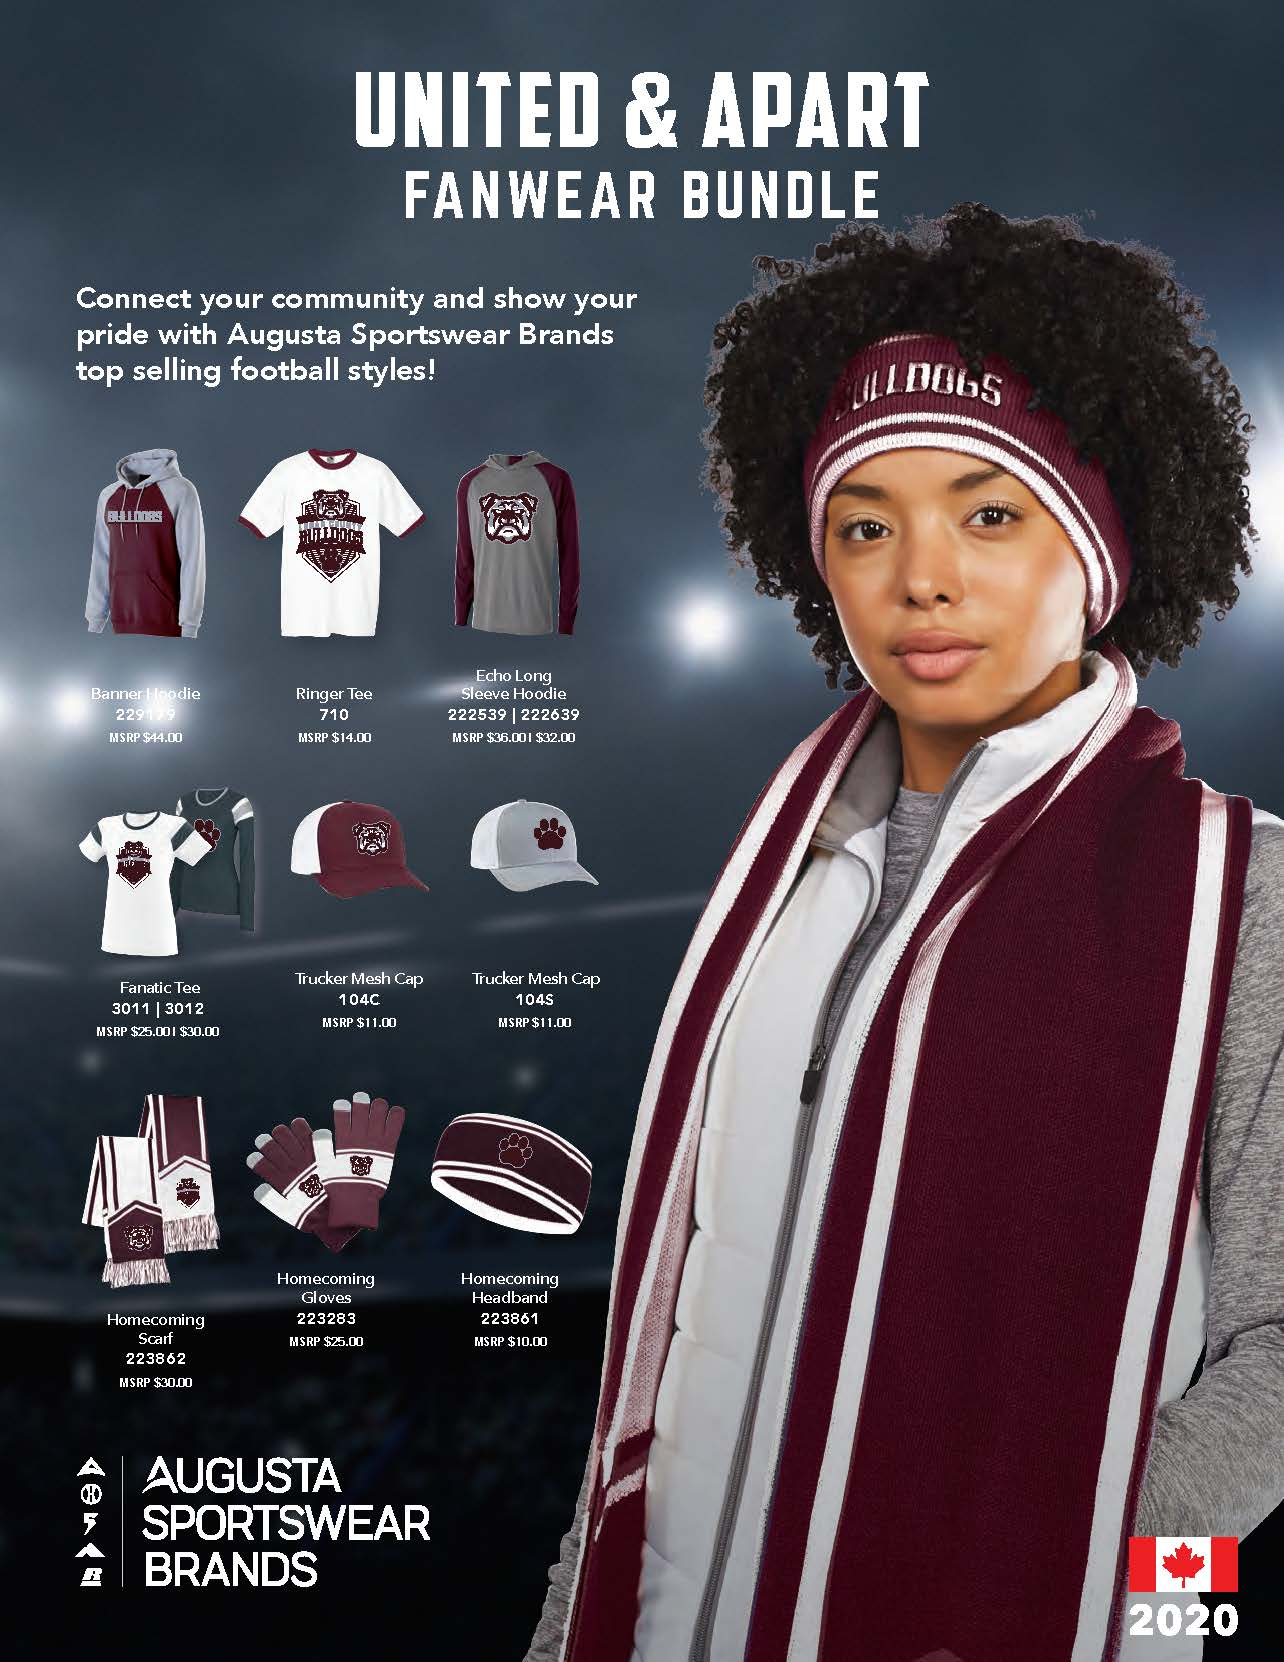 Fanwear value bundle